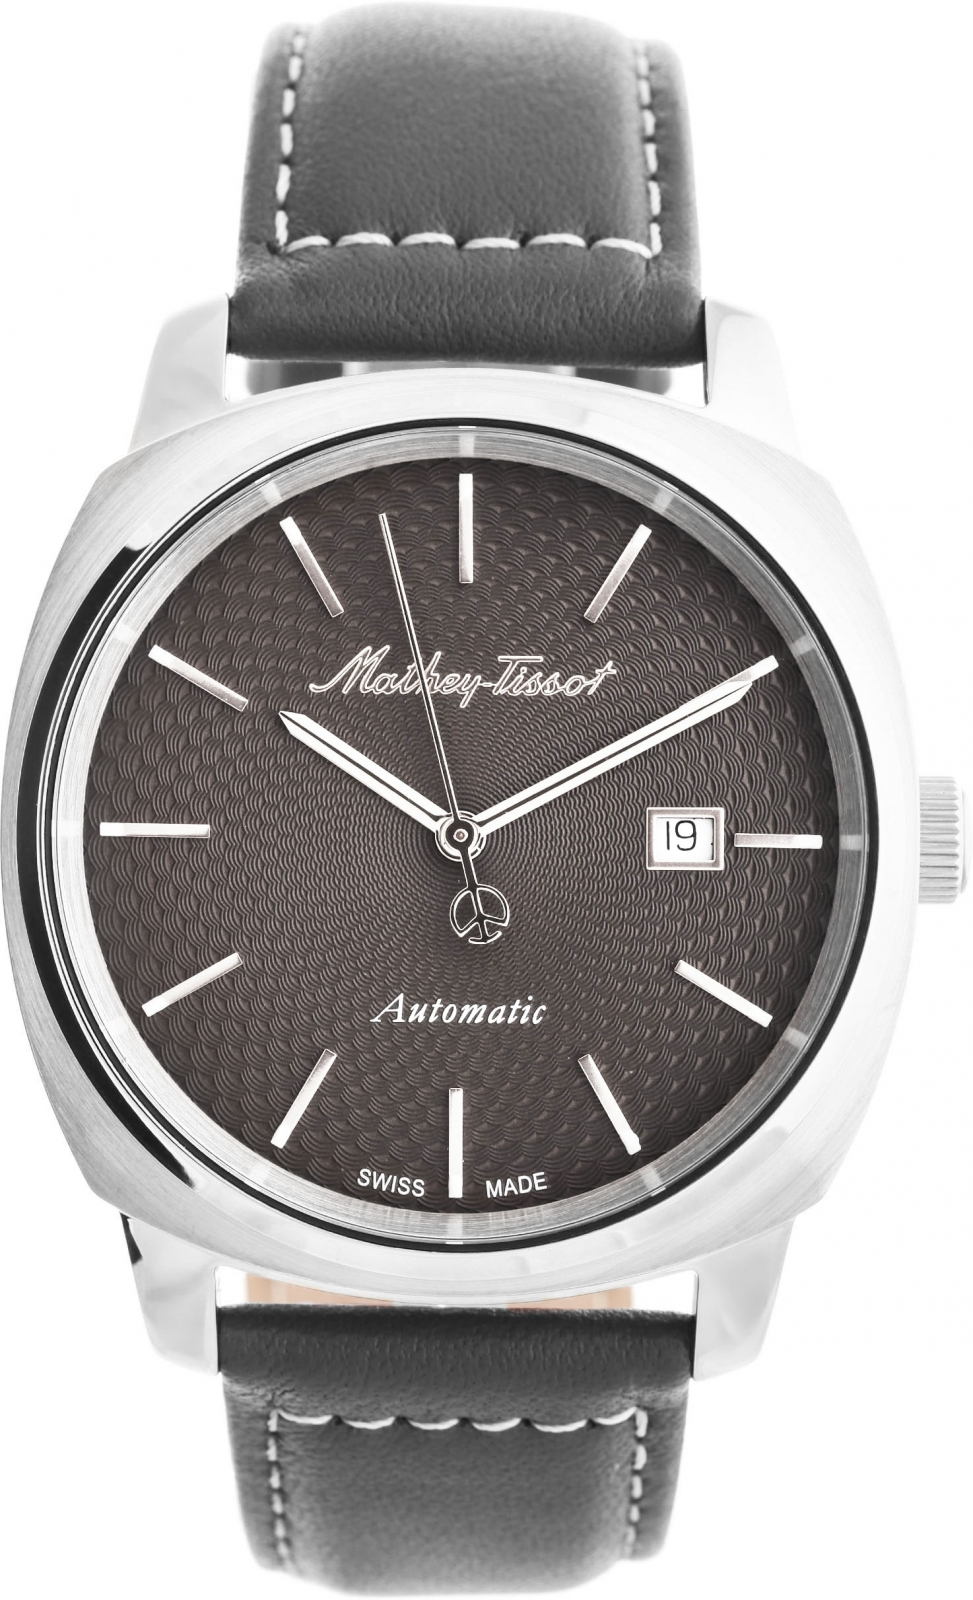 Mathey-Tissot Smart H6940ATS от Mathey-Tissot